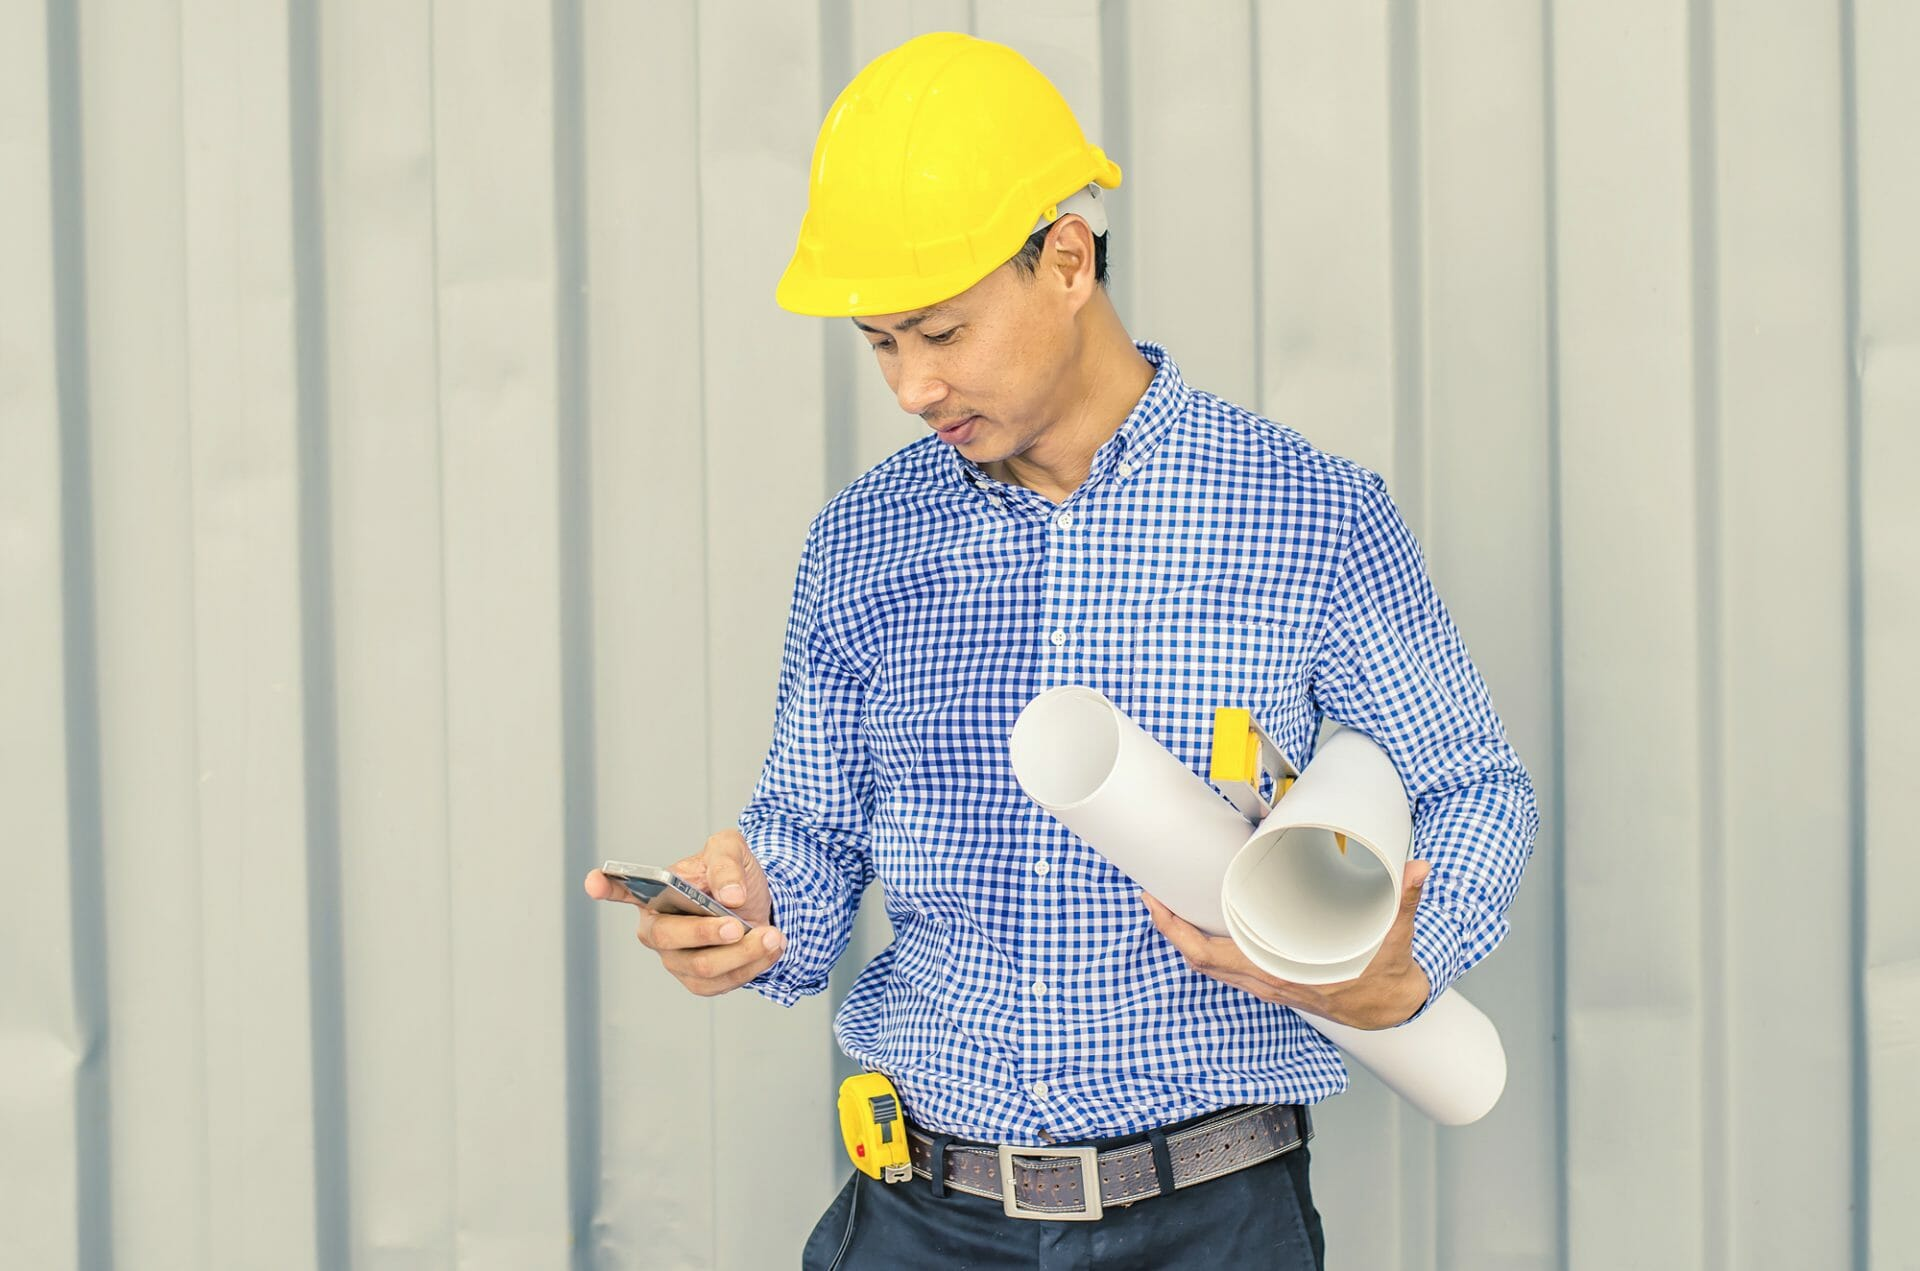 sms marketing tradesman guide